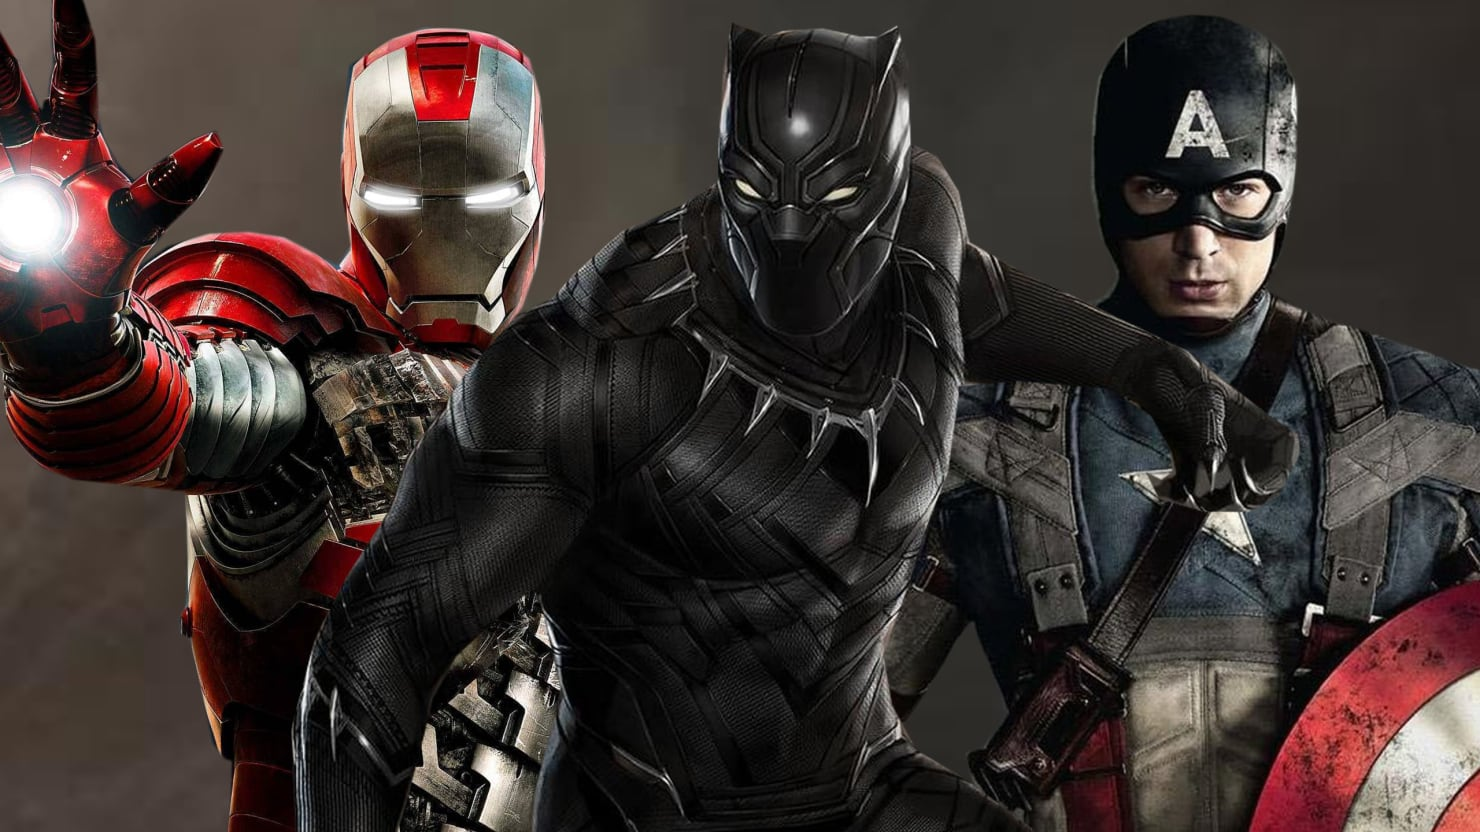 iron man black panther captain america avengers hd wallpaper